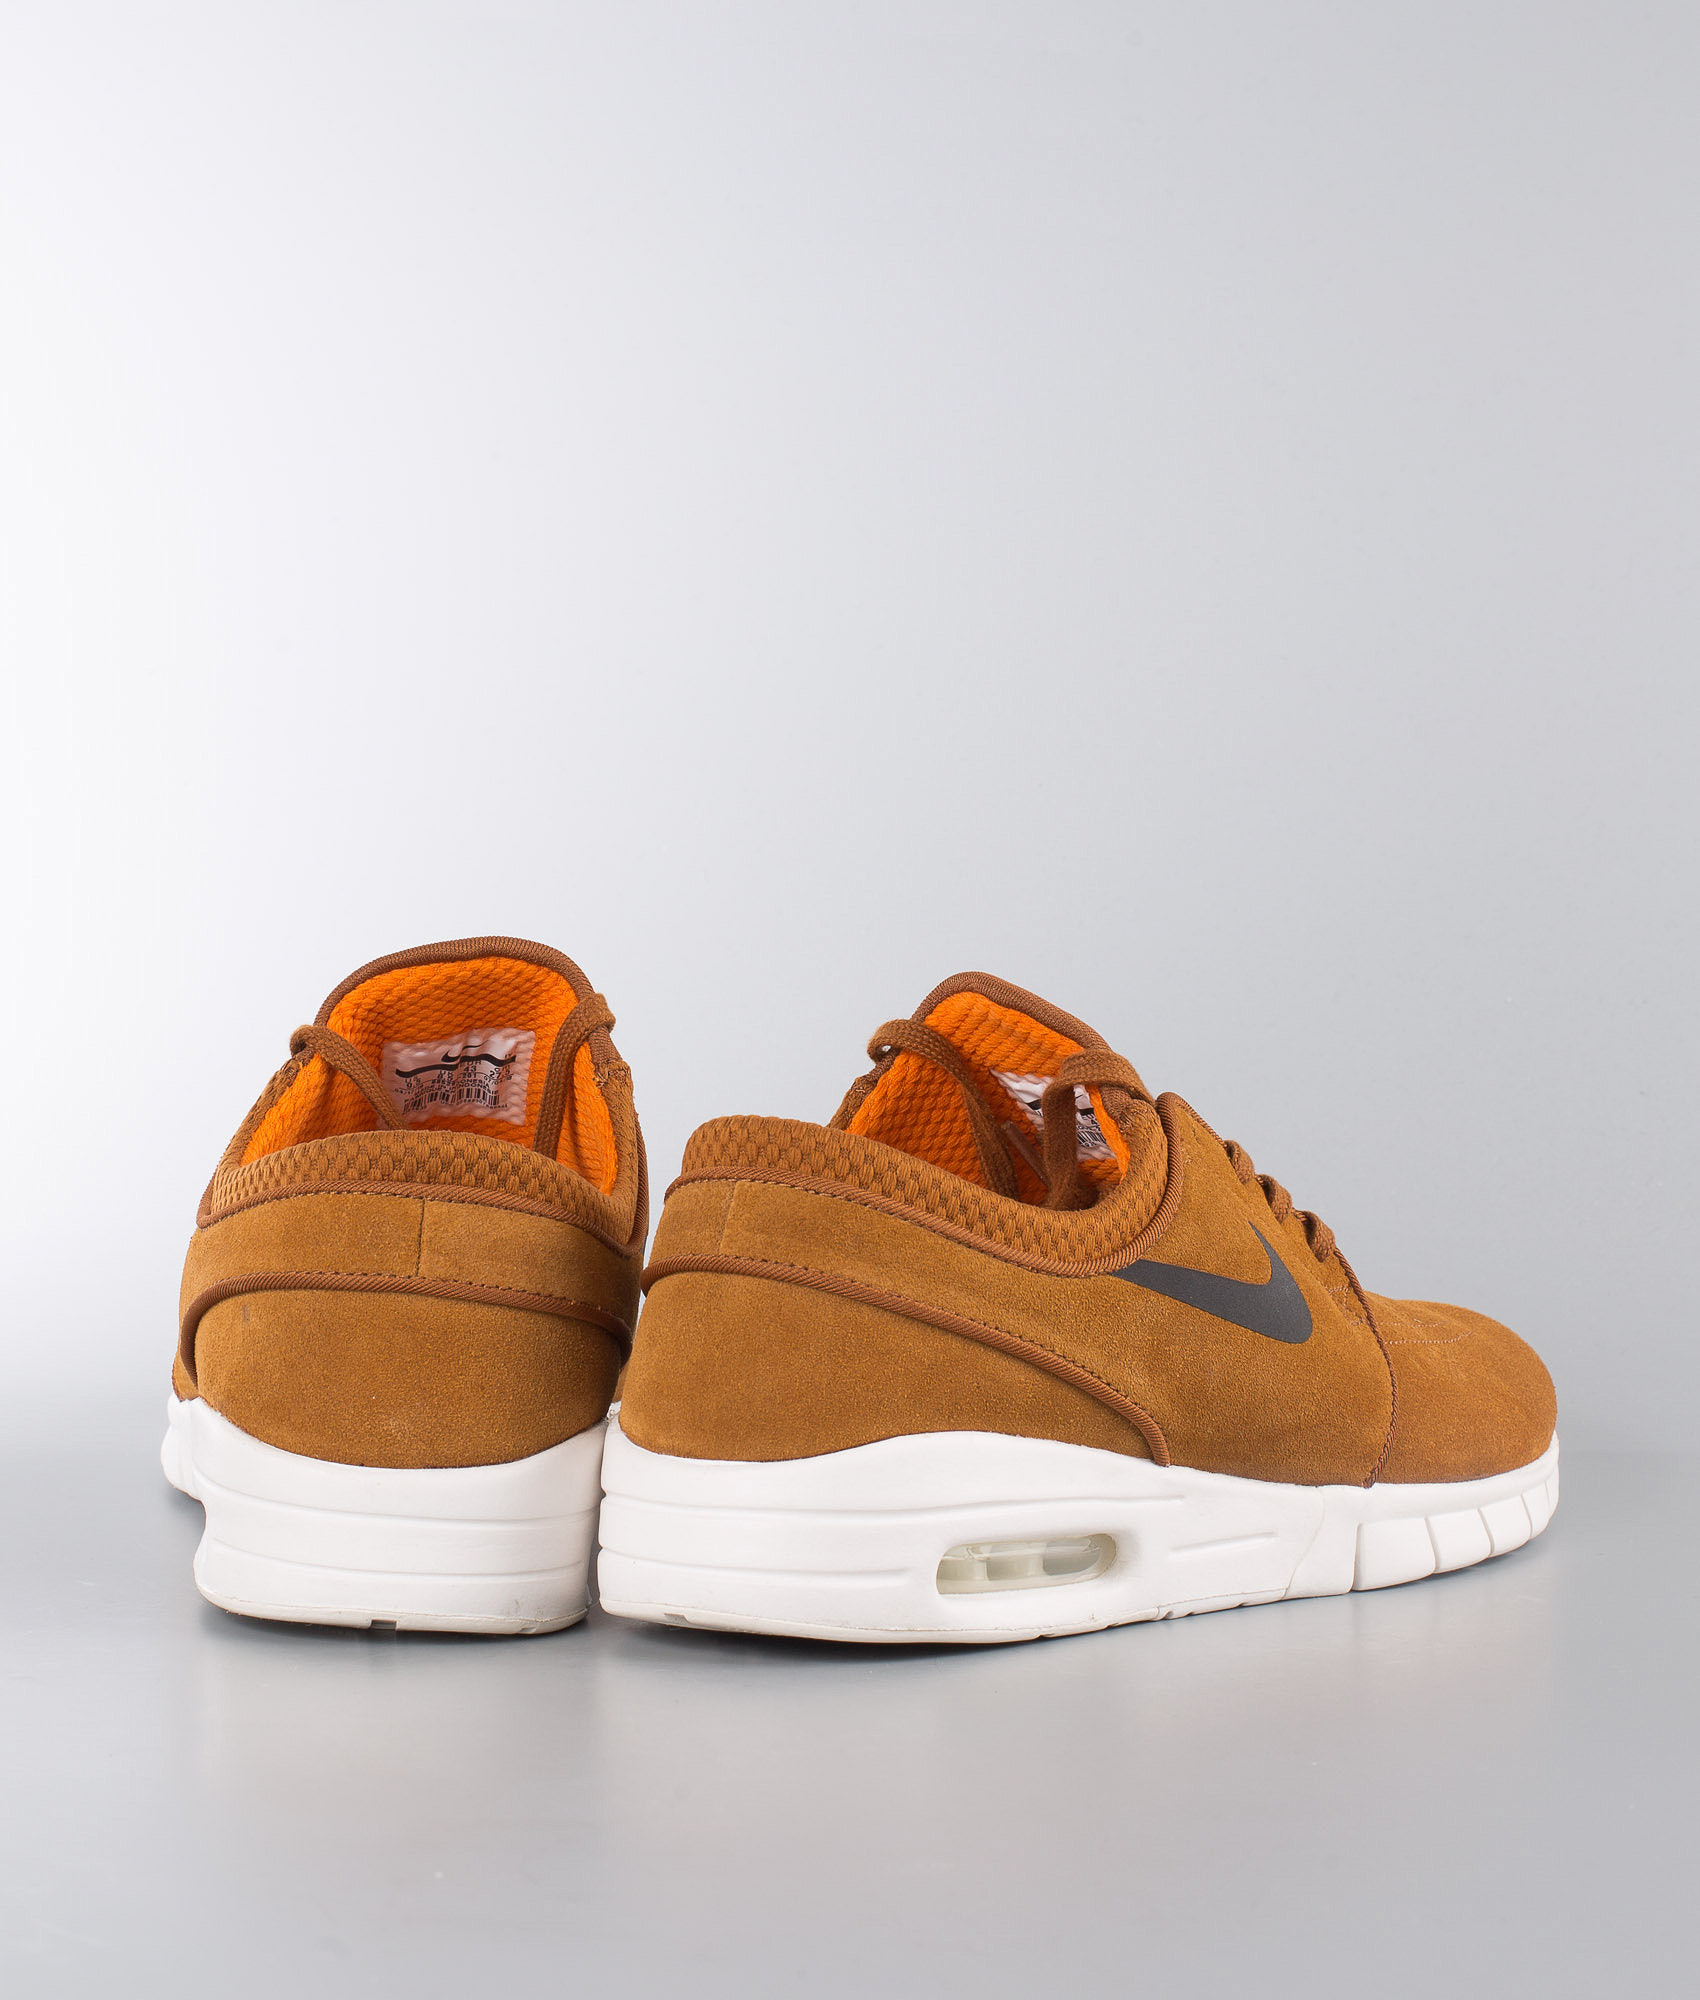 Nike Stefan Janoski Max L Shoes Hazelnut Black-Ivory-Clay Orange ... dd1a8a685761